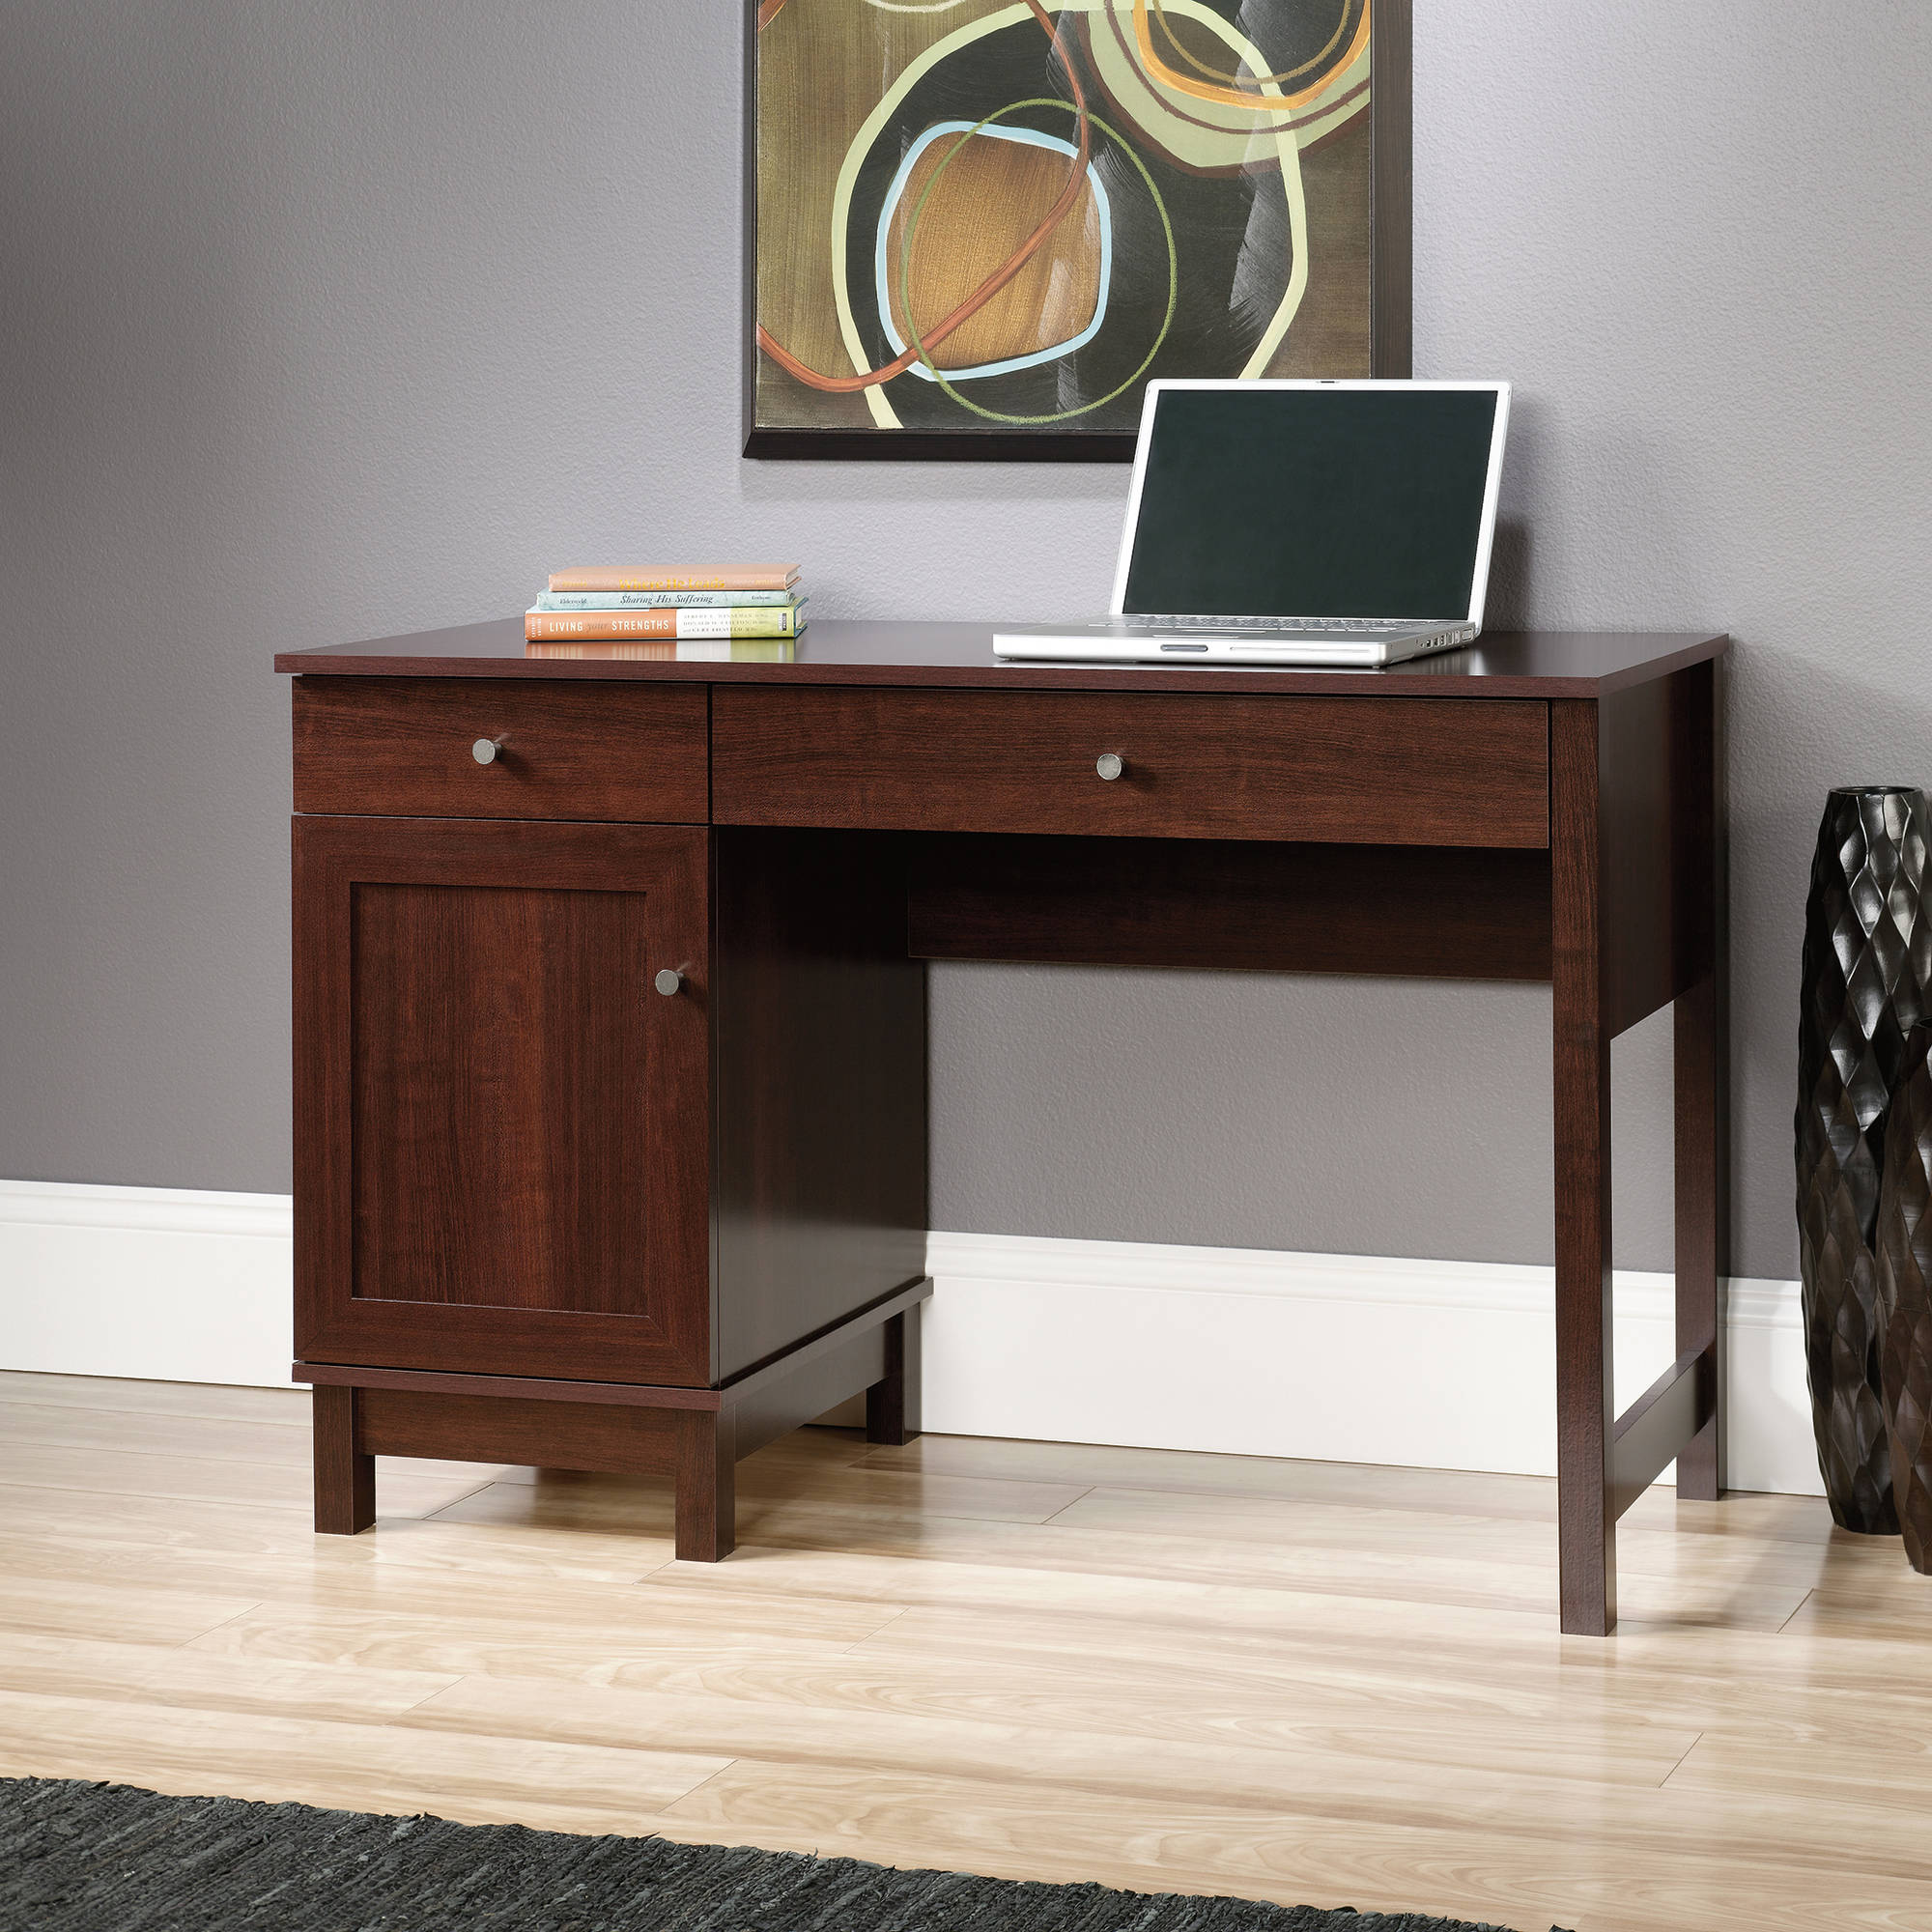 Sauder Kendall Square Desk, Cherry